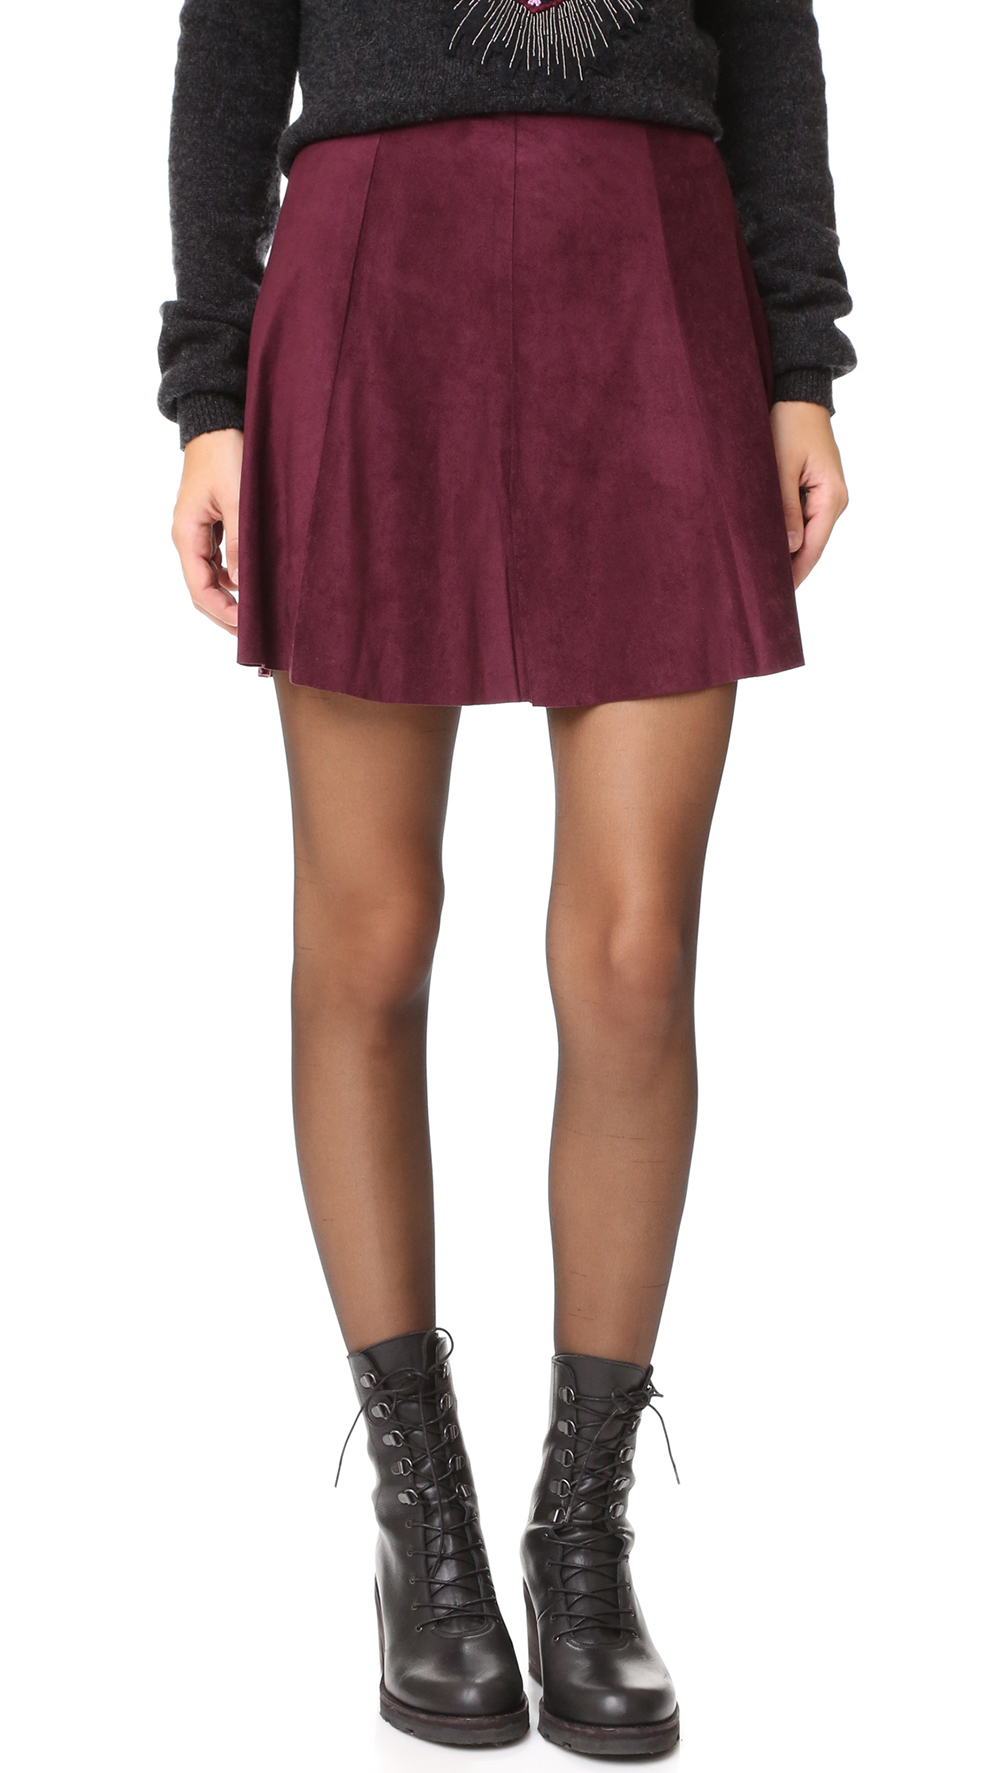 BB Dakota Kimber Faux Suede Skirt - The Perfect A-line Mini Skirt